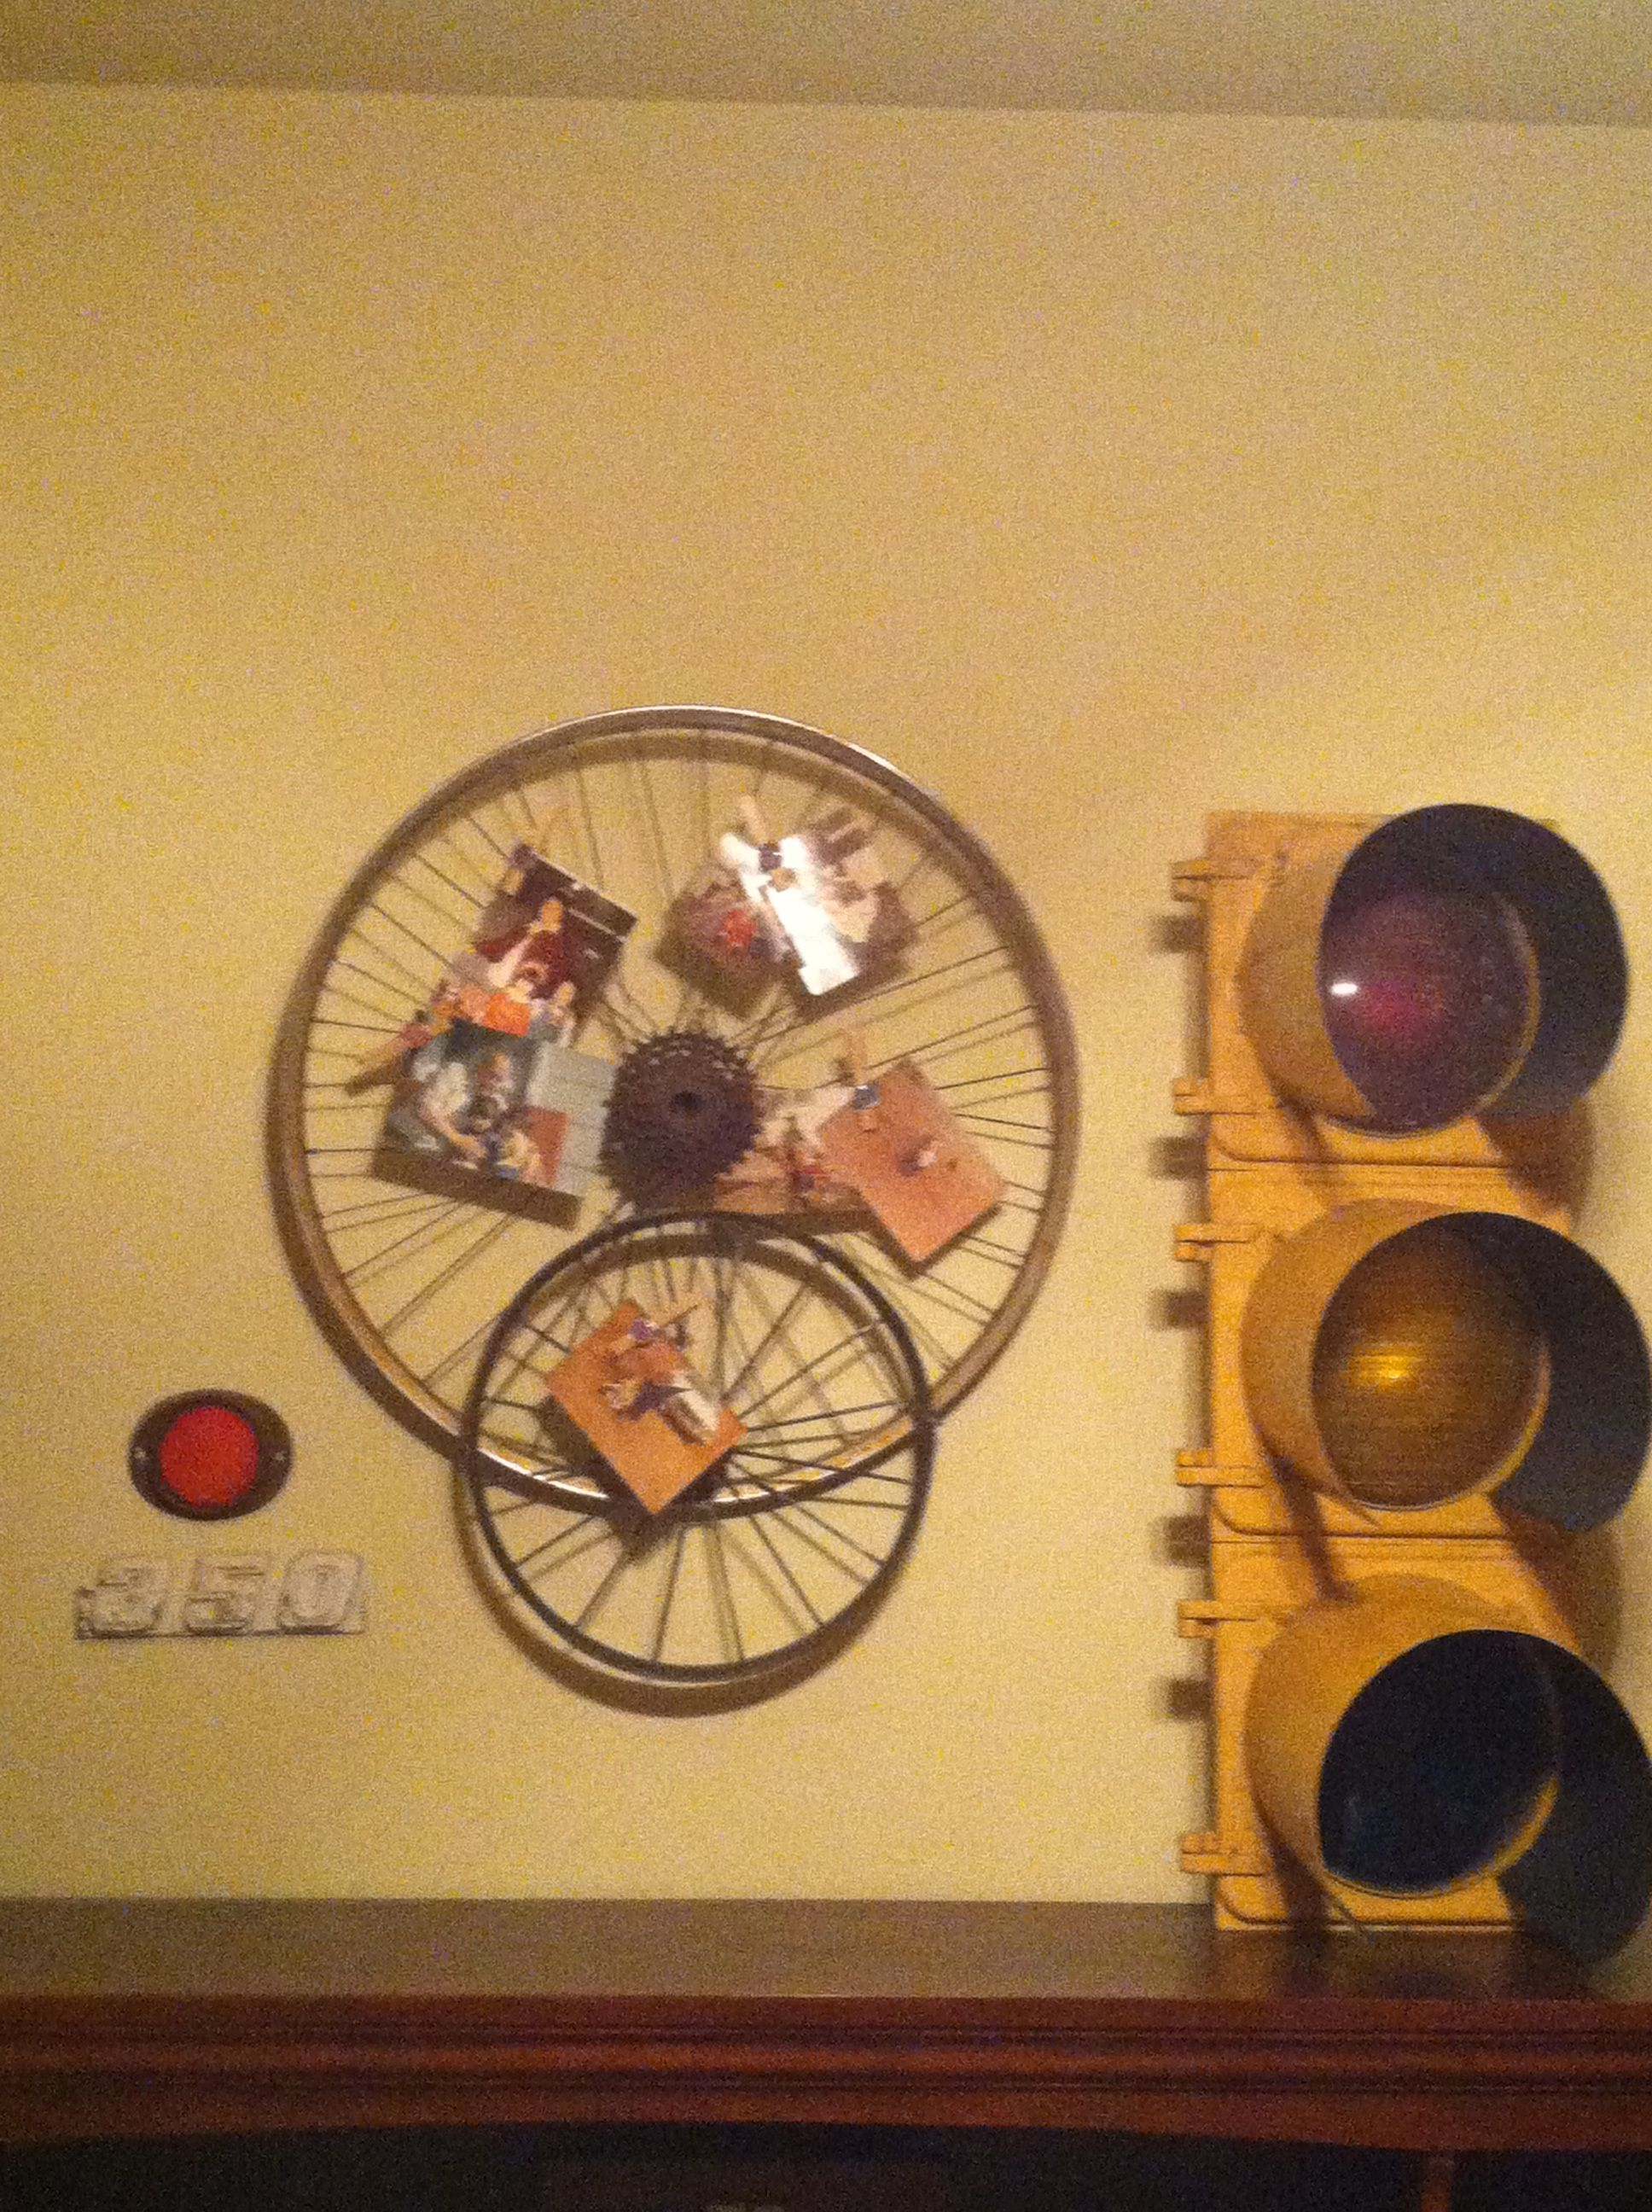 Old bike wheels from childhood made into a decorative picture frame ...